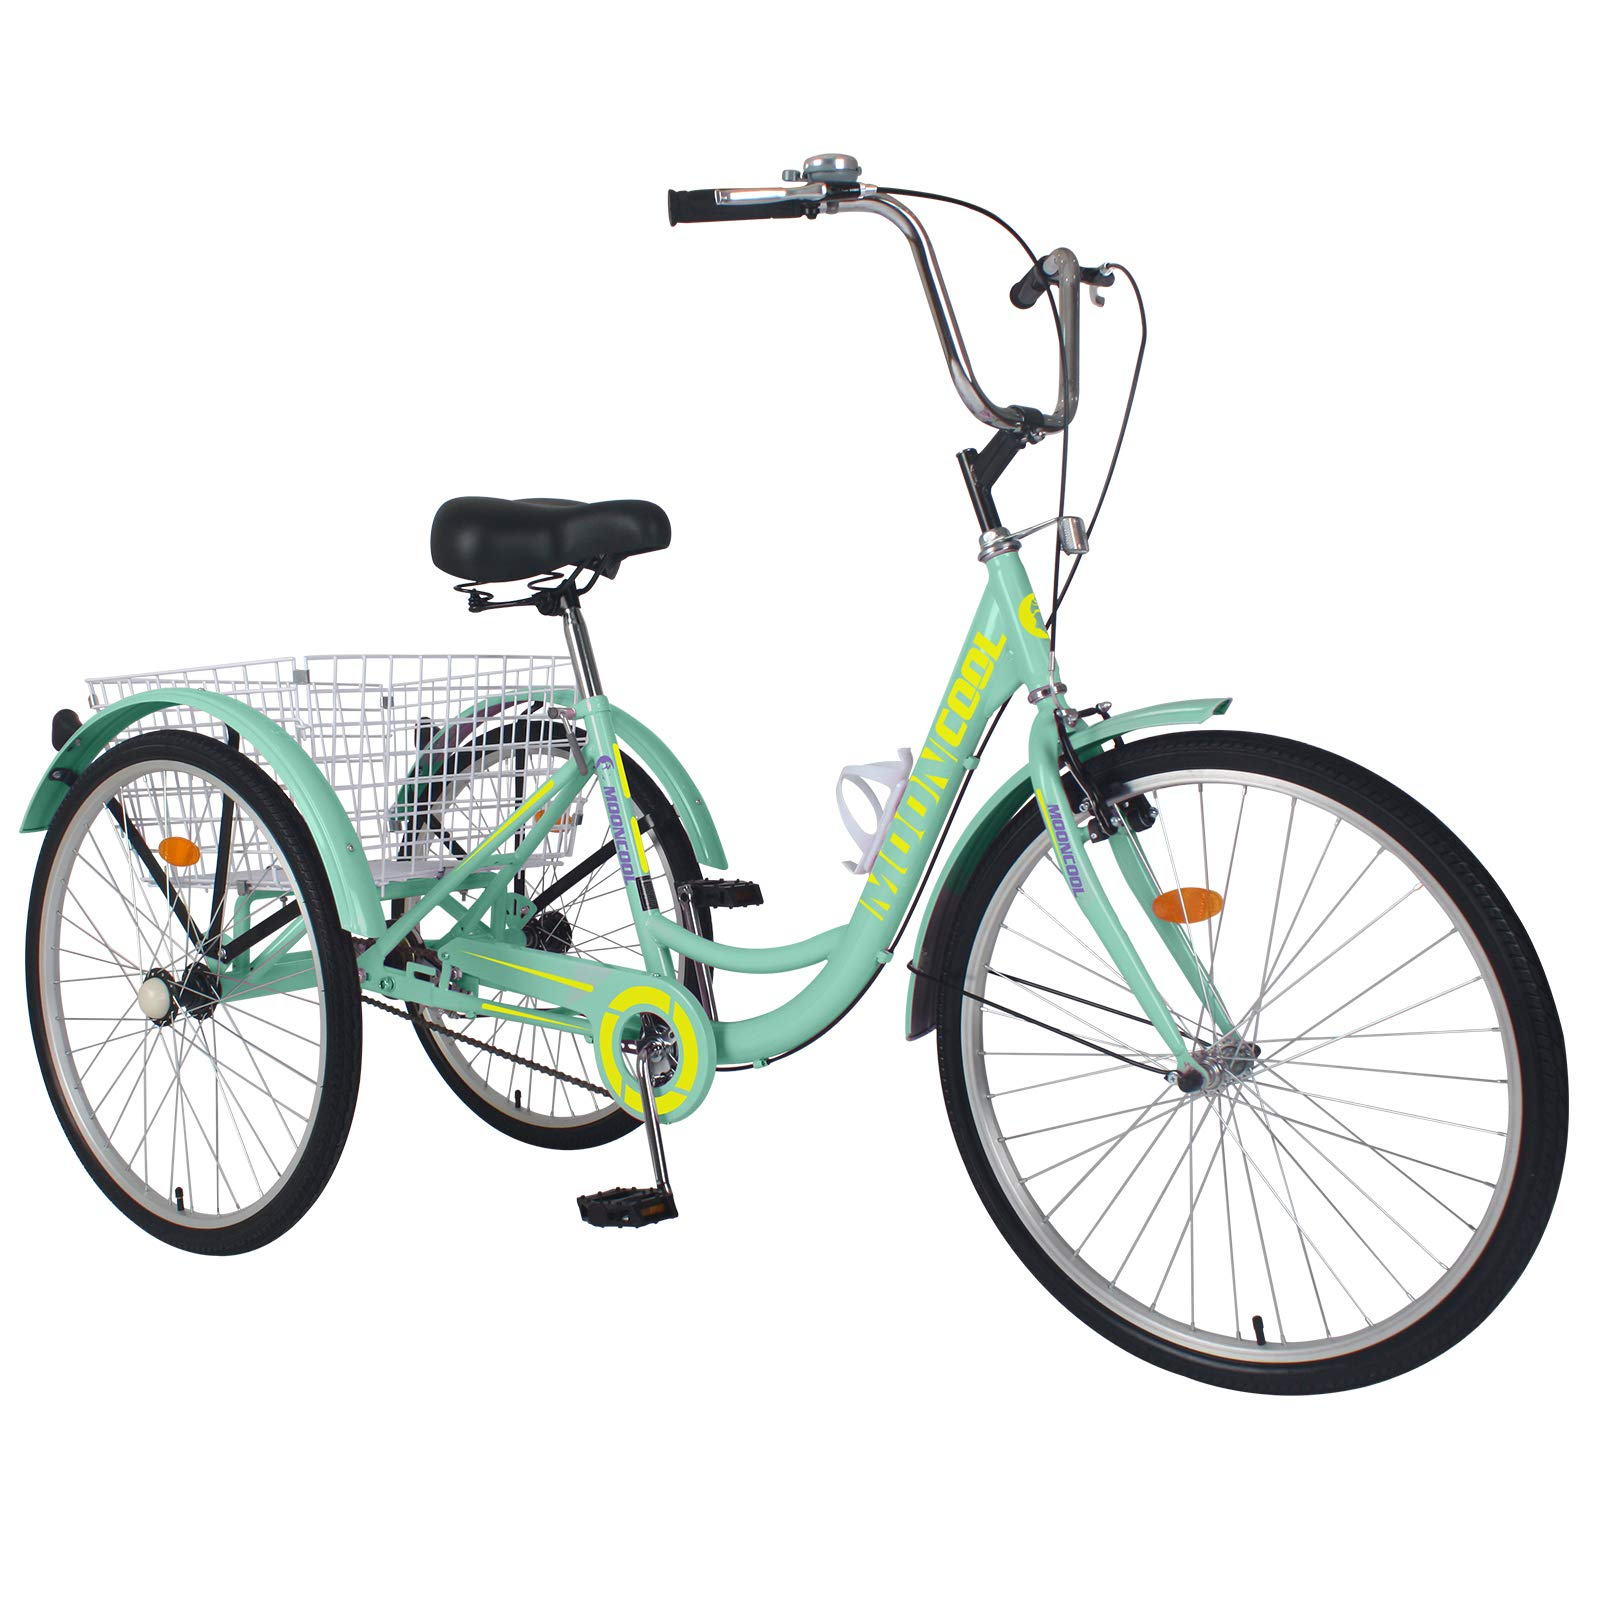 DoCred Adult Tricycle, 20/24 inch Adult Trikes Single Speed 3 Wheel Bikes for Adults Bicycles Cruise Trike with Shopping Basket for Seniors, Women, Men